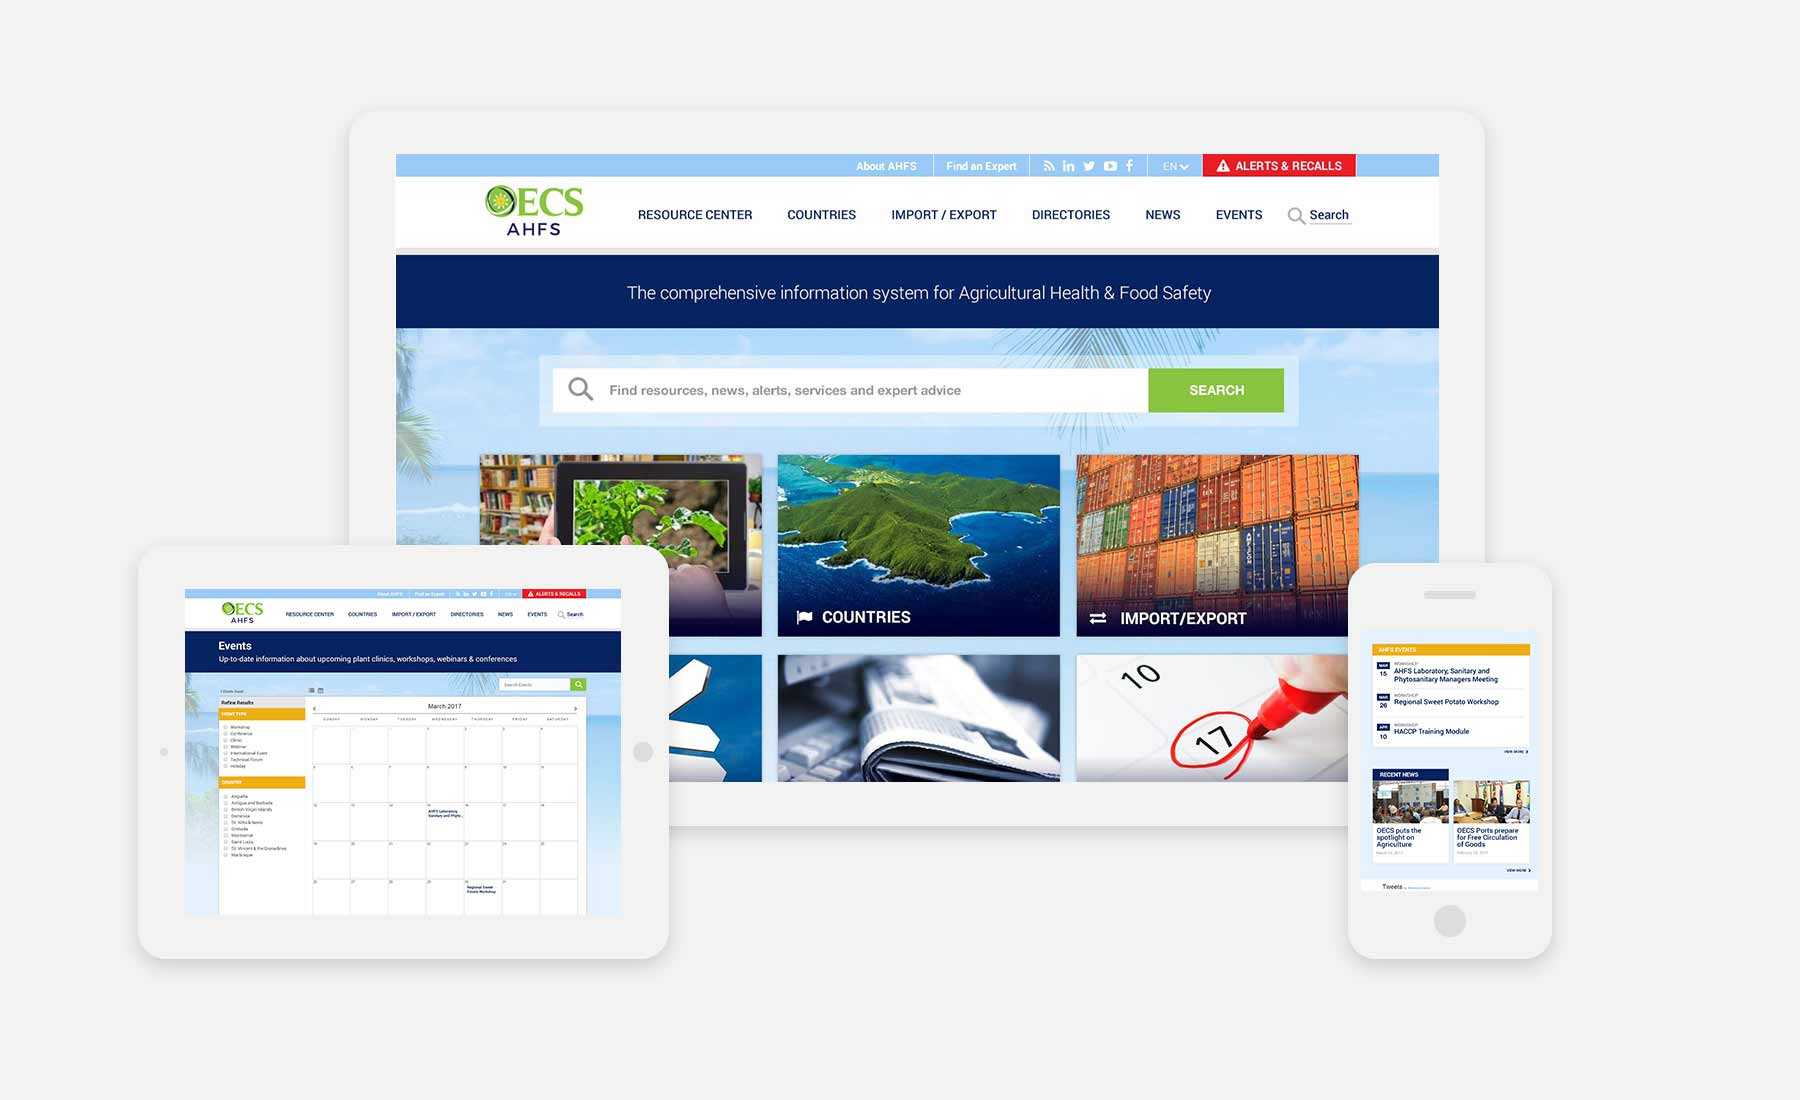 OECS responsive website shown on several devices